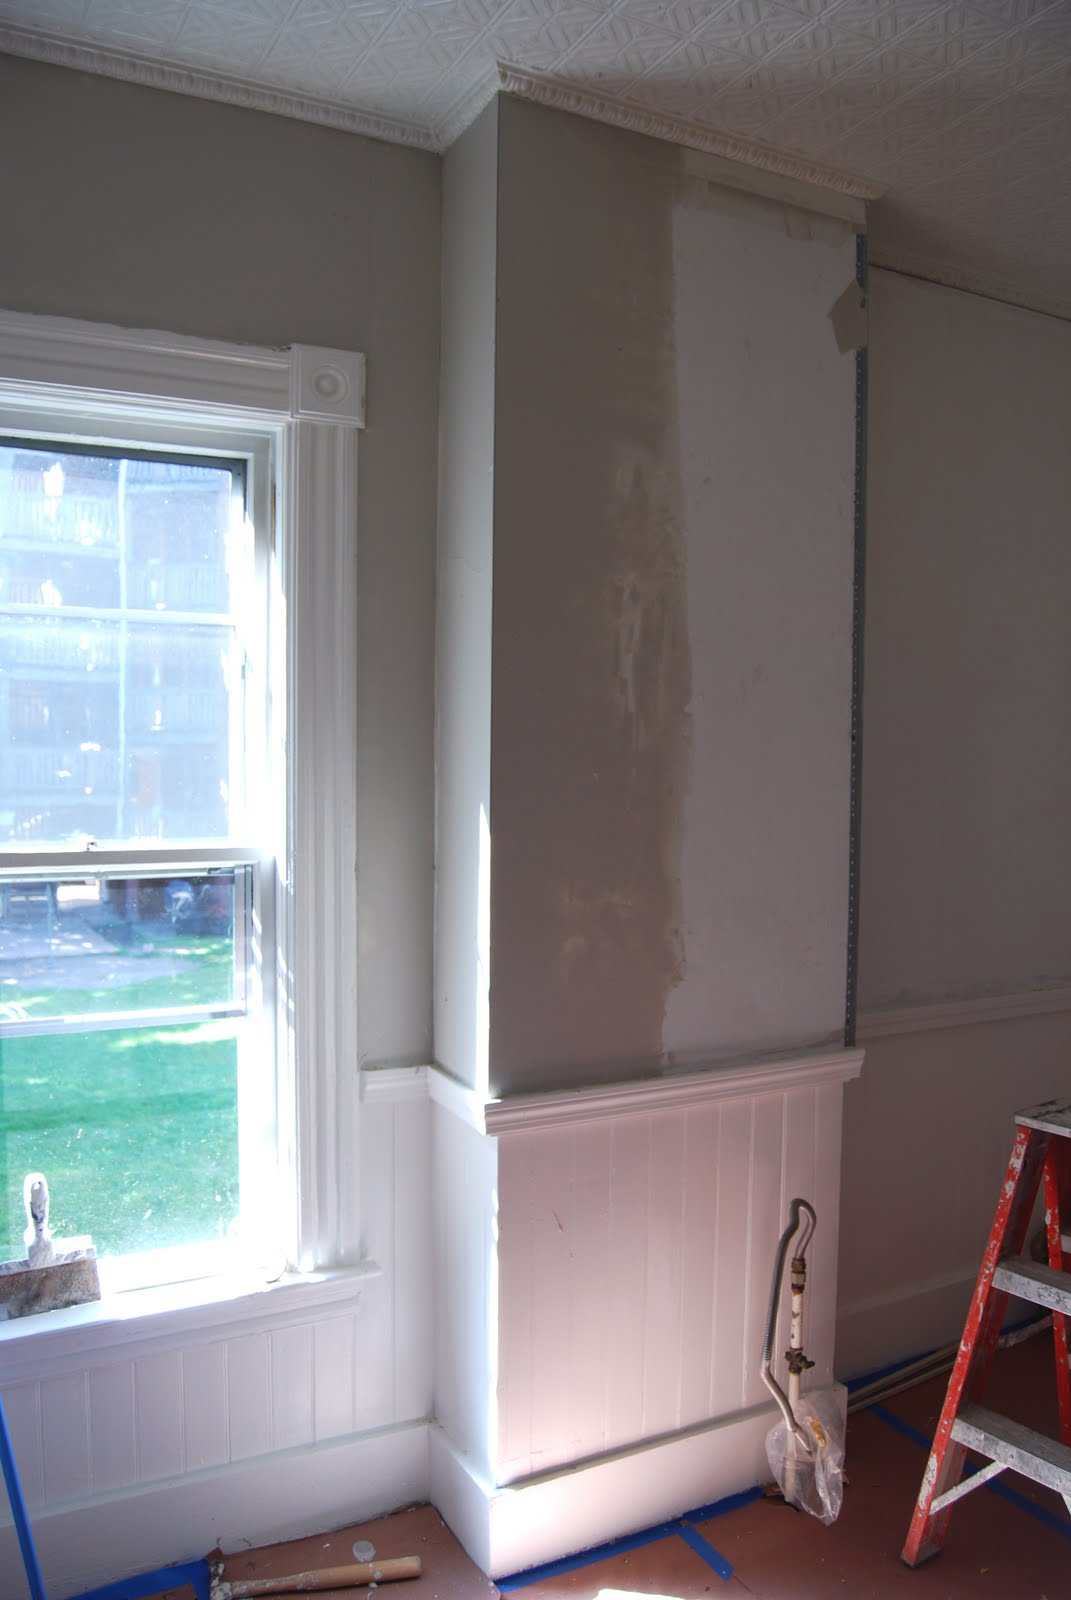 of removing wallpaper vs. skim coating over the wallpaper with wallboard